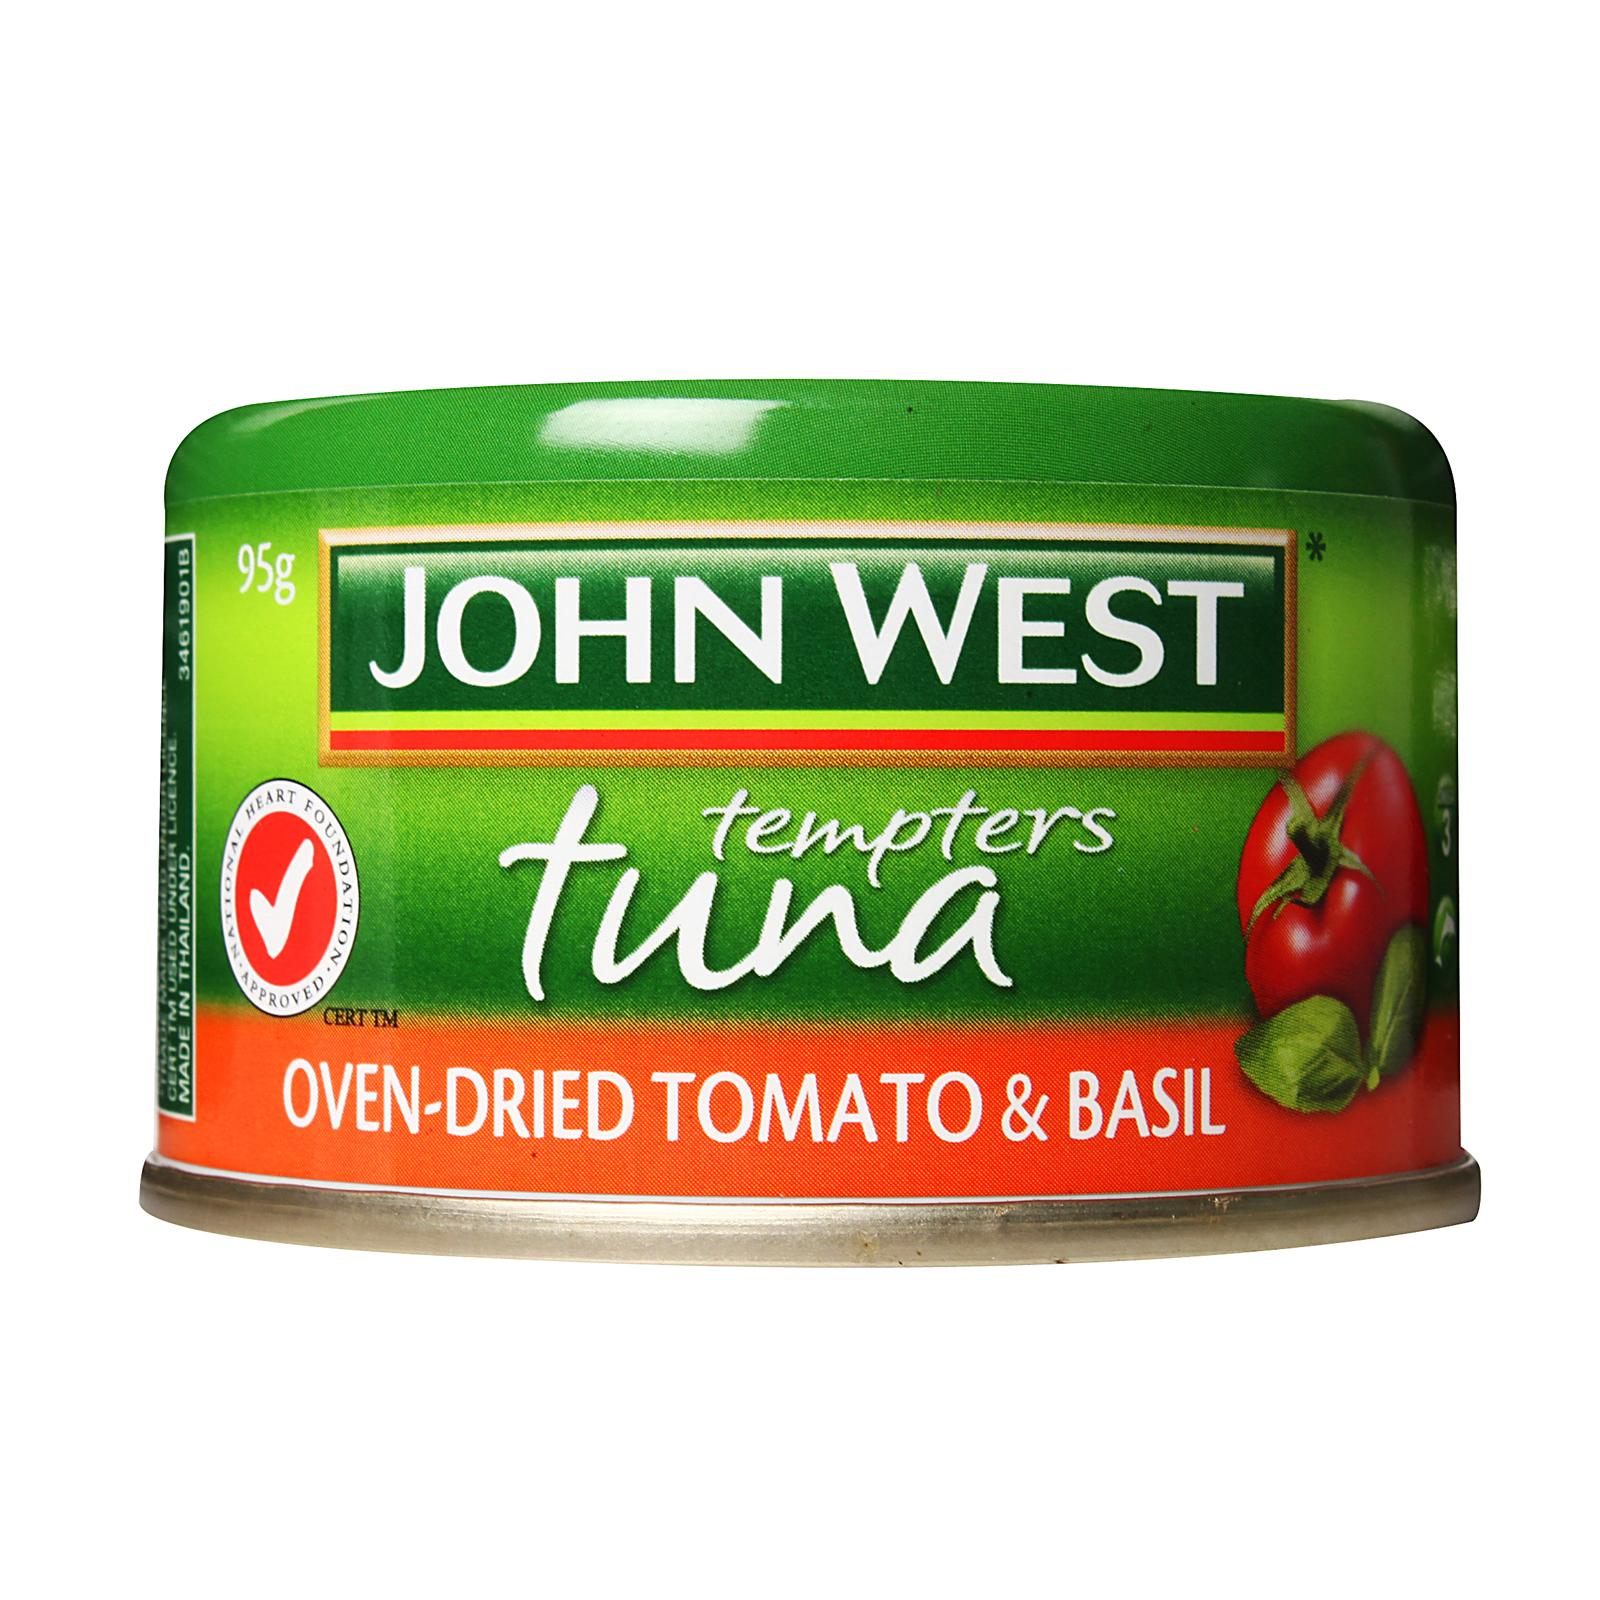 John West Oven-Dried Tomato and Basil Tuna Tempters